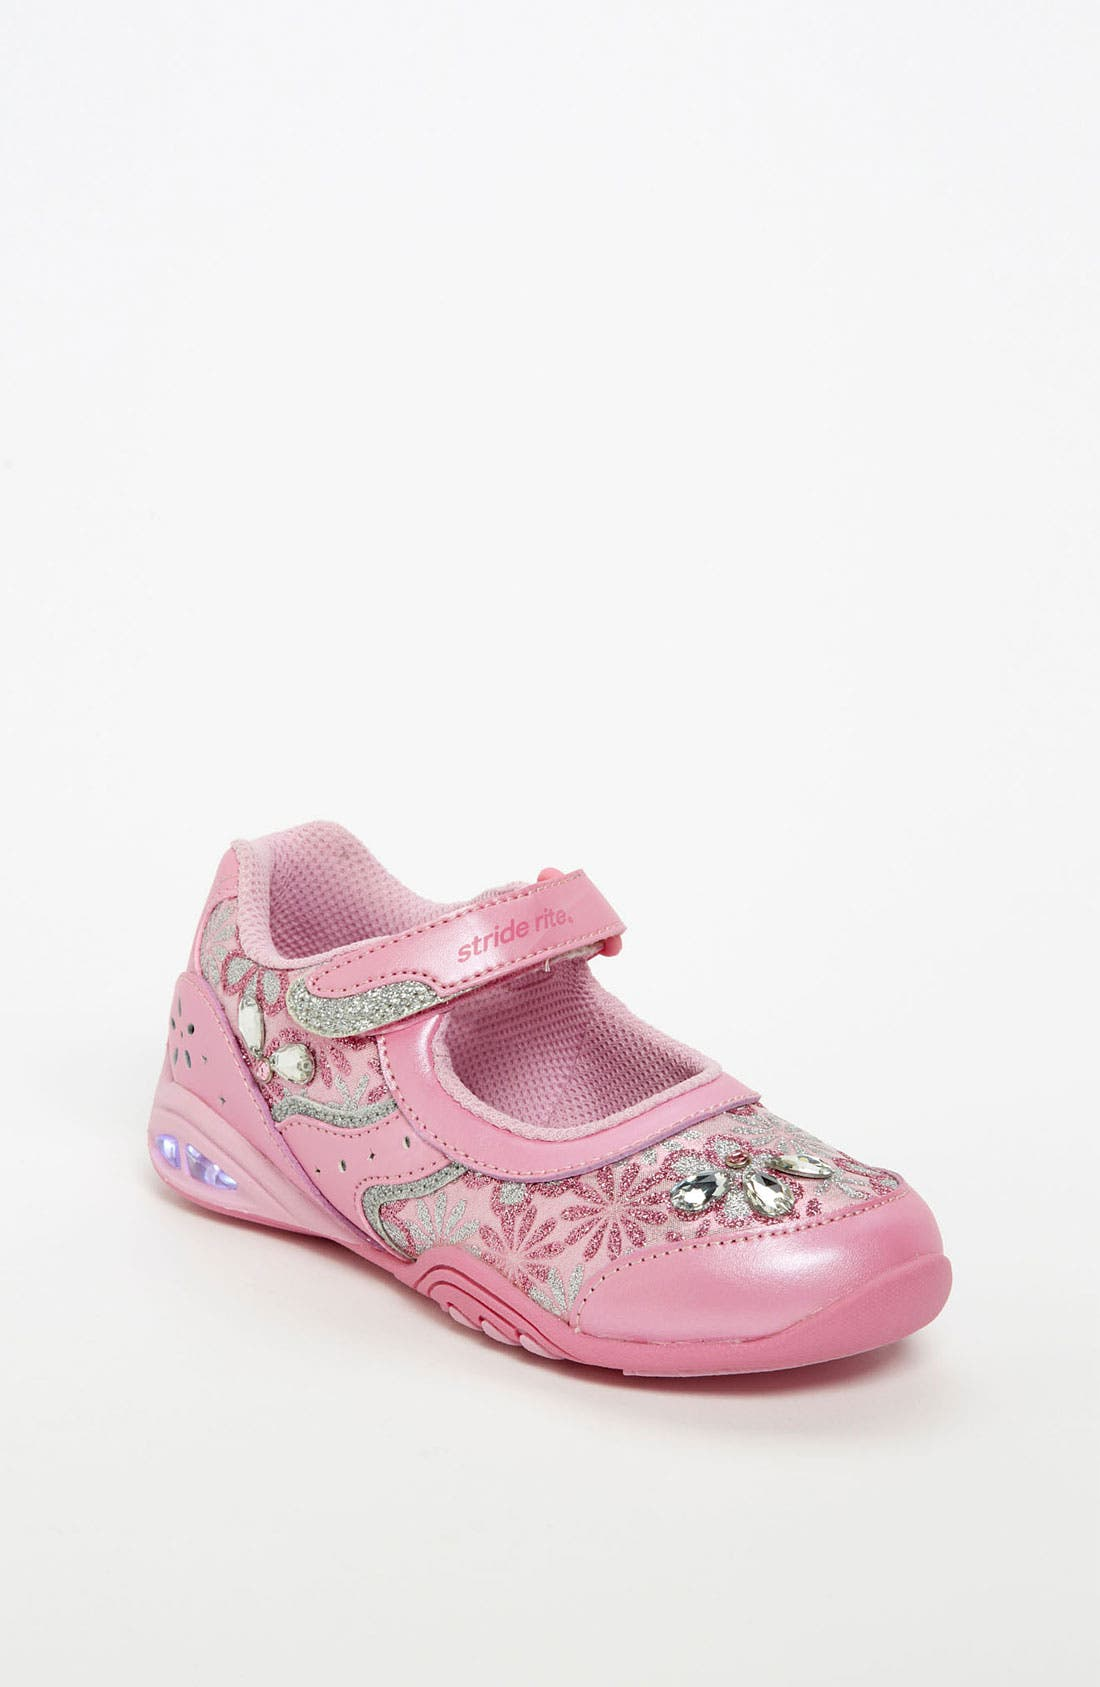 Main Image - Stride Rite 'Rae' Sneaker (Walker, Toddler & Little Kid)